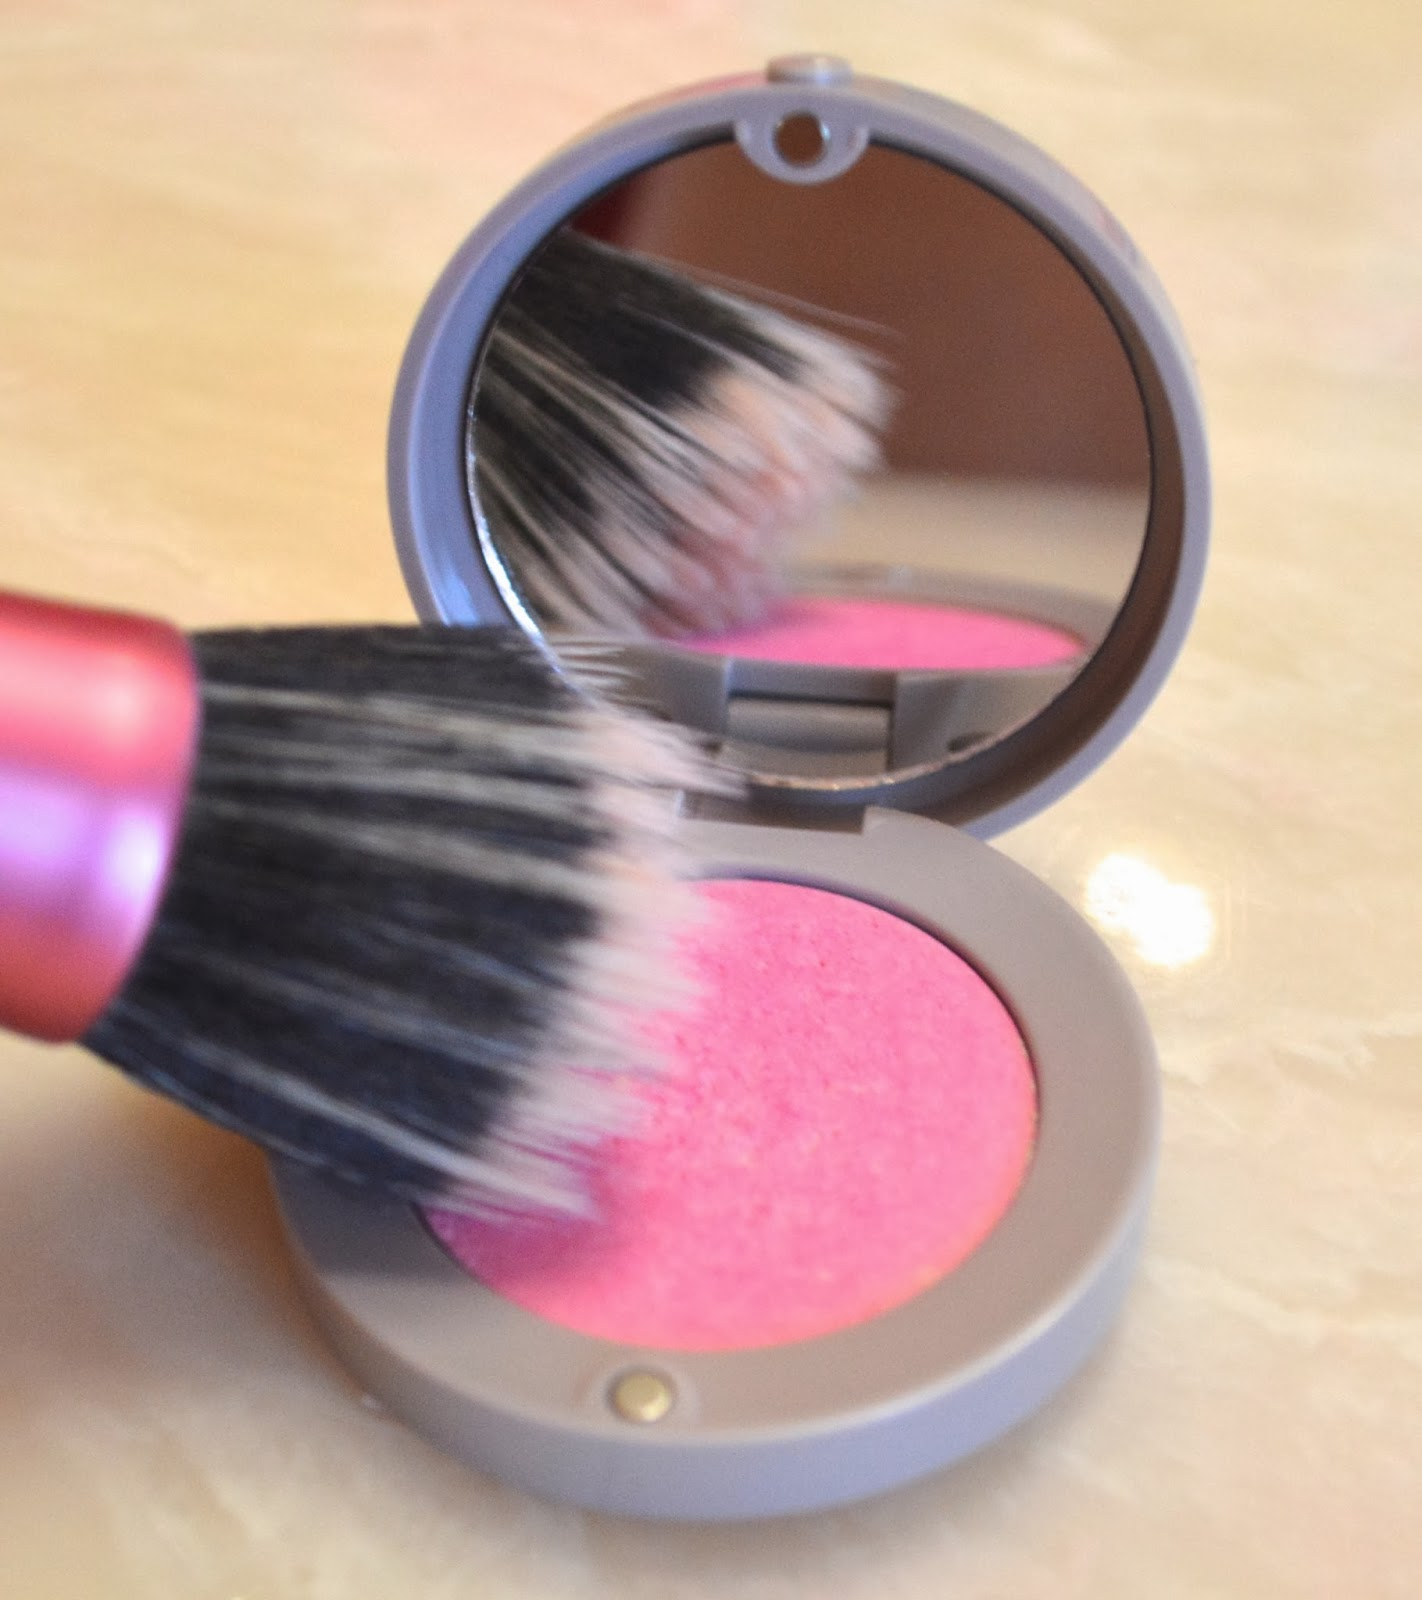 Bourjois Blush Exclusif Swatches and Review